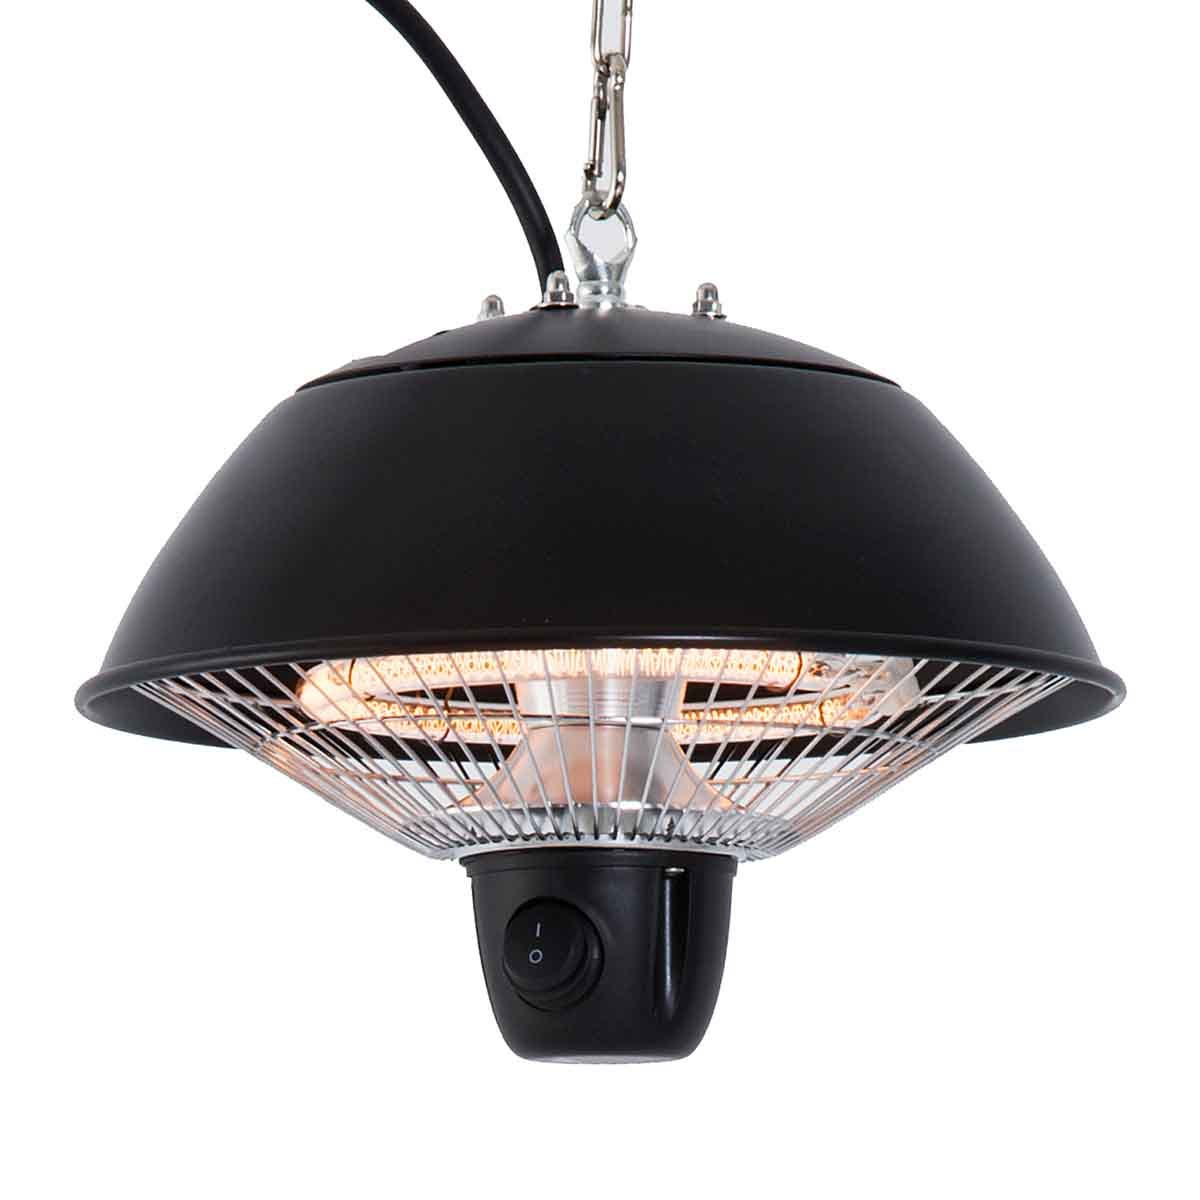 Outsunny 1500w Hanging Patio Heater - Black